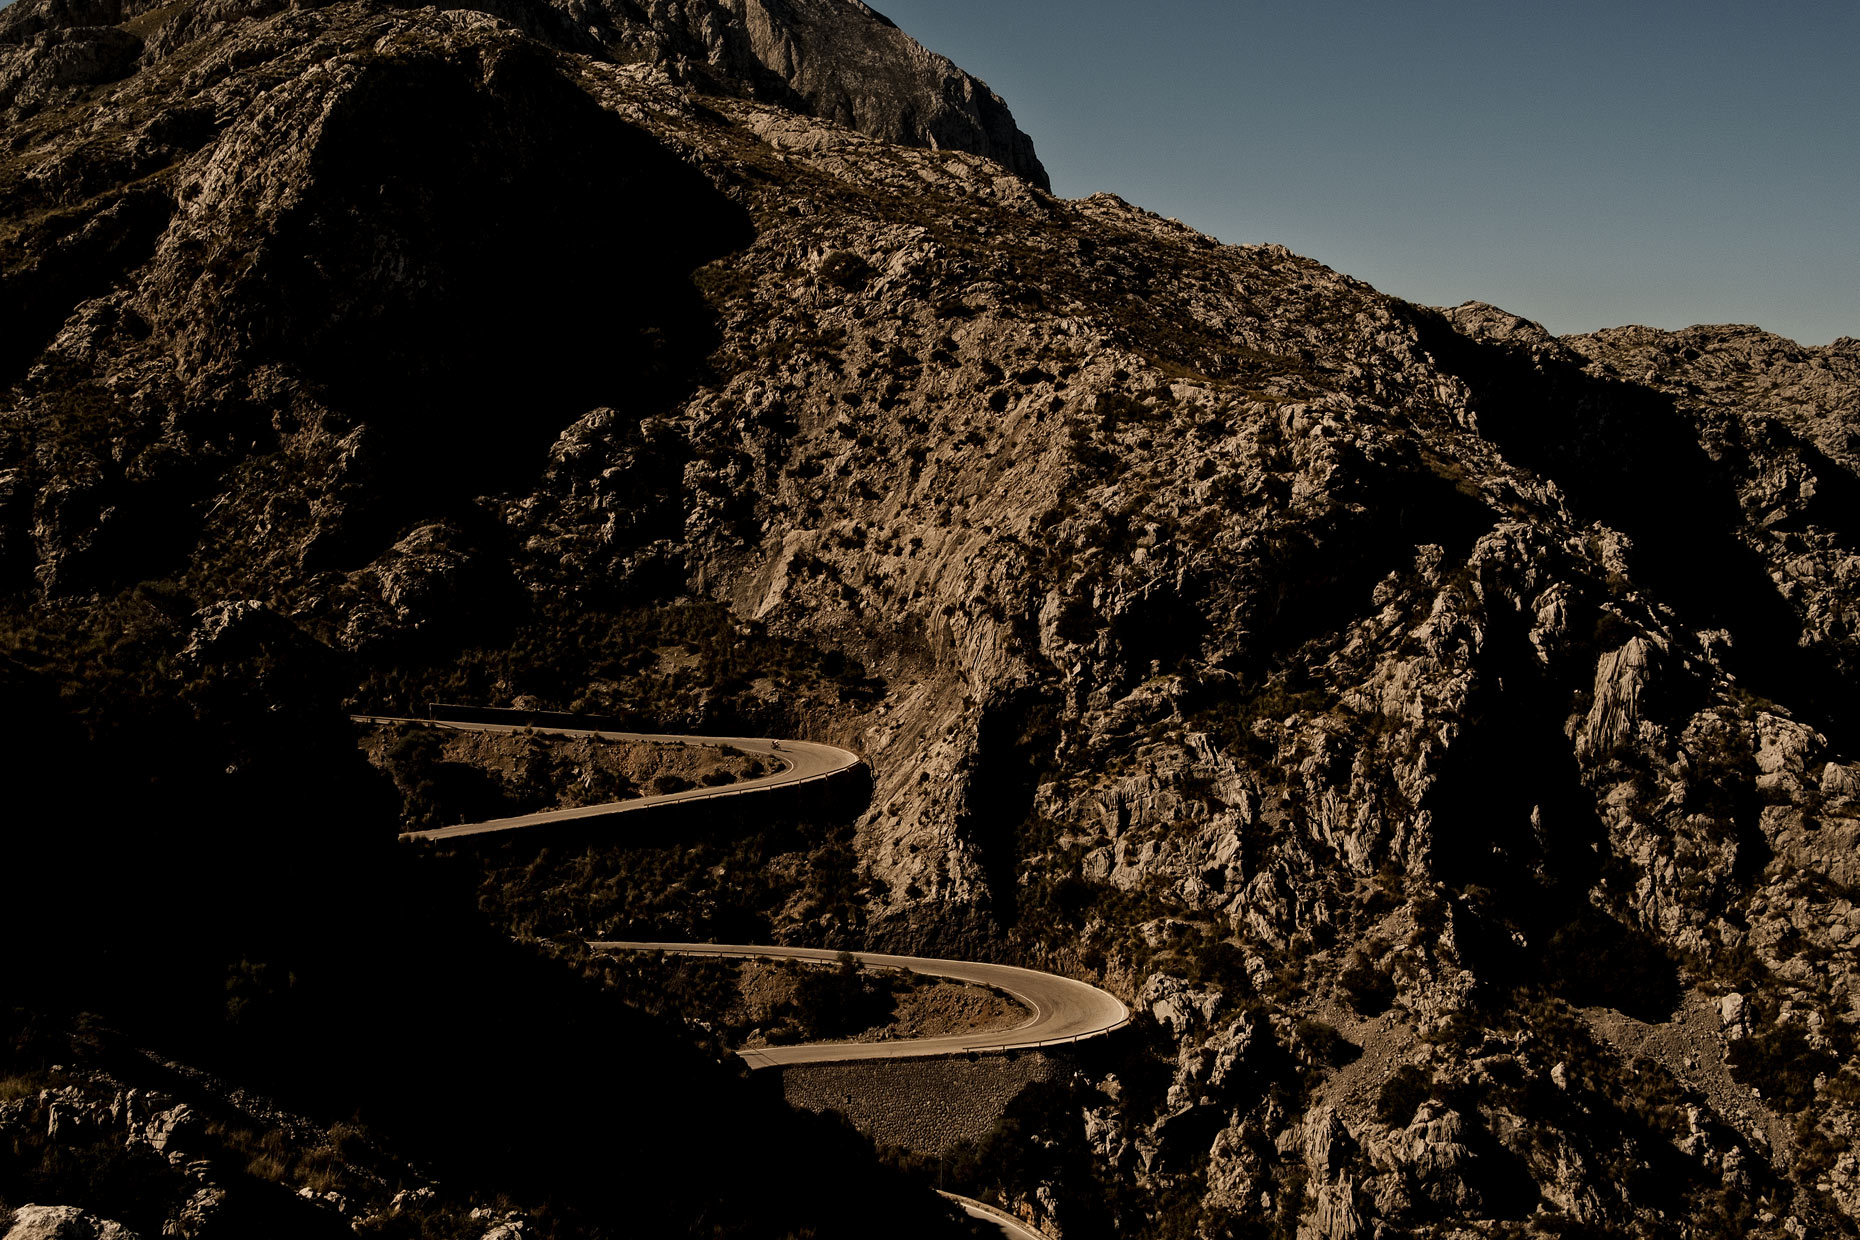 Sa Calobra photographed by London advertising photographer Andy Smith